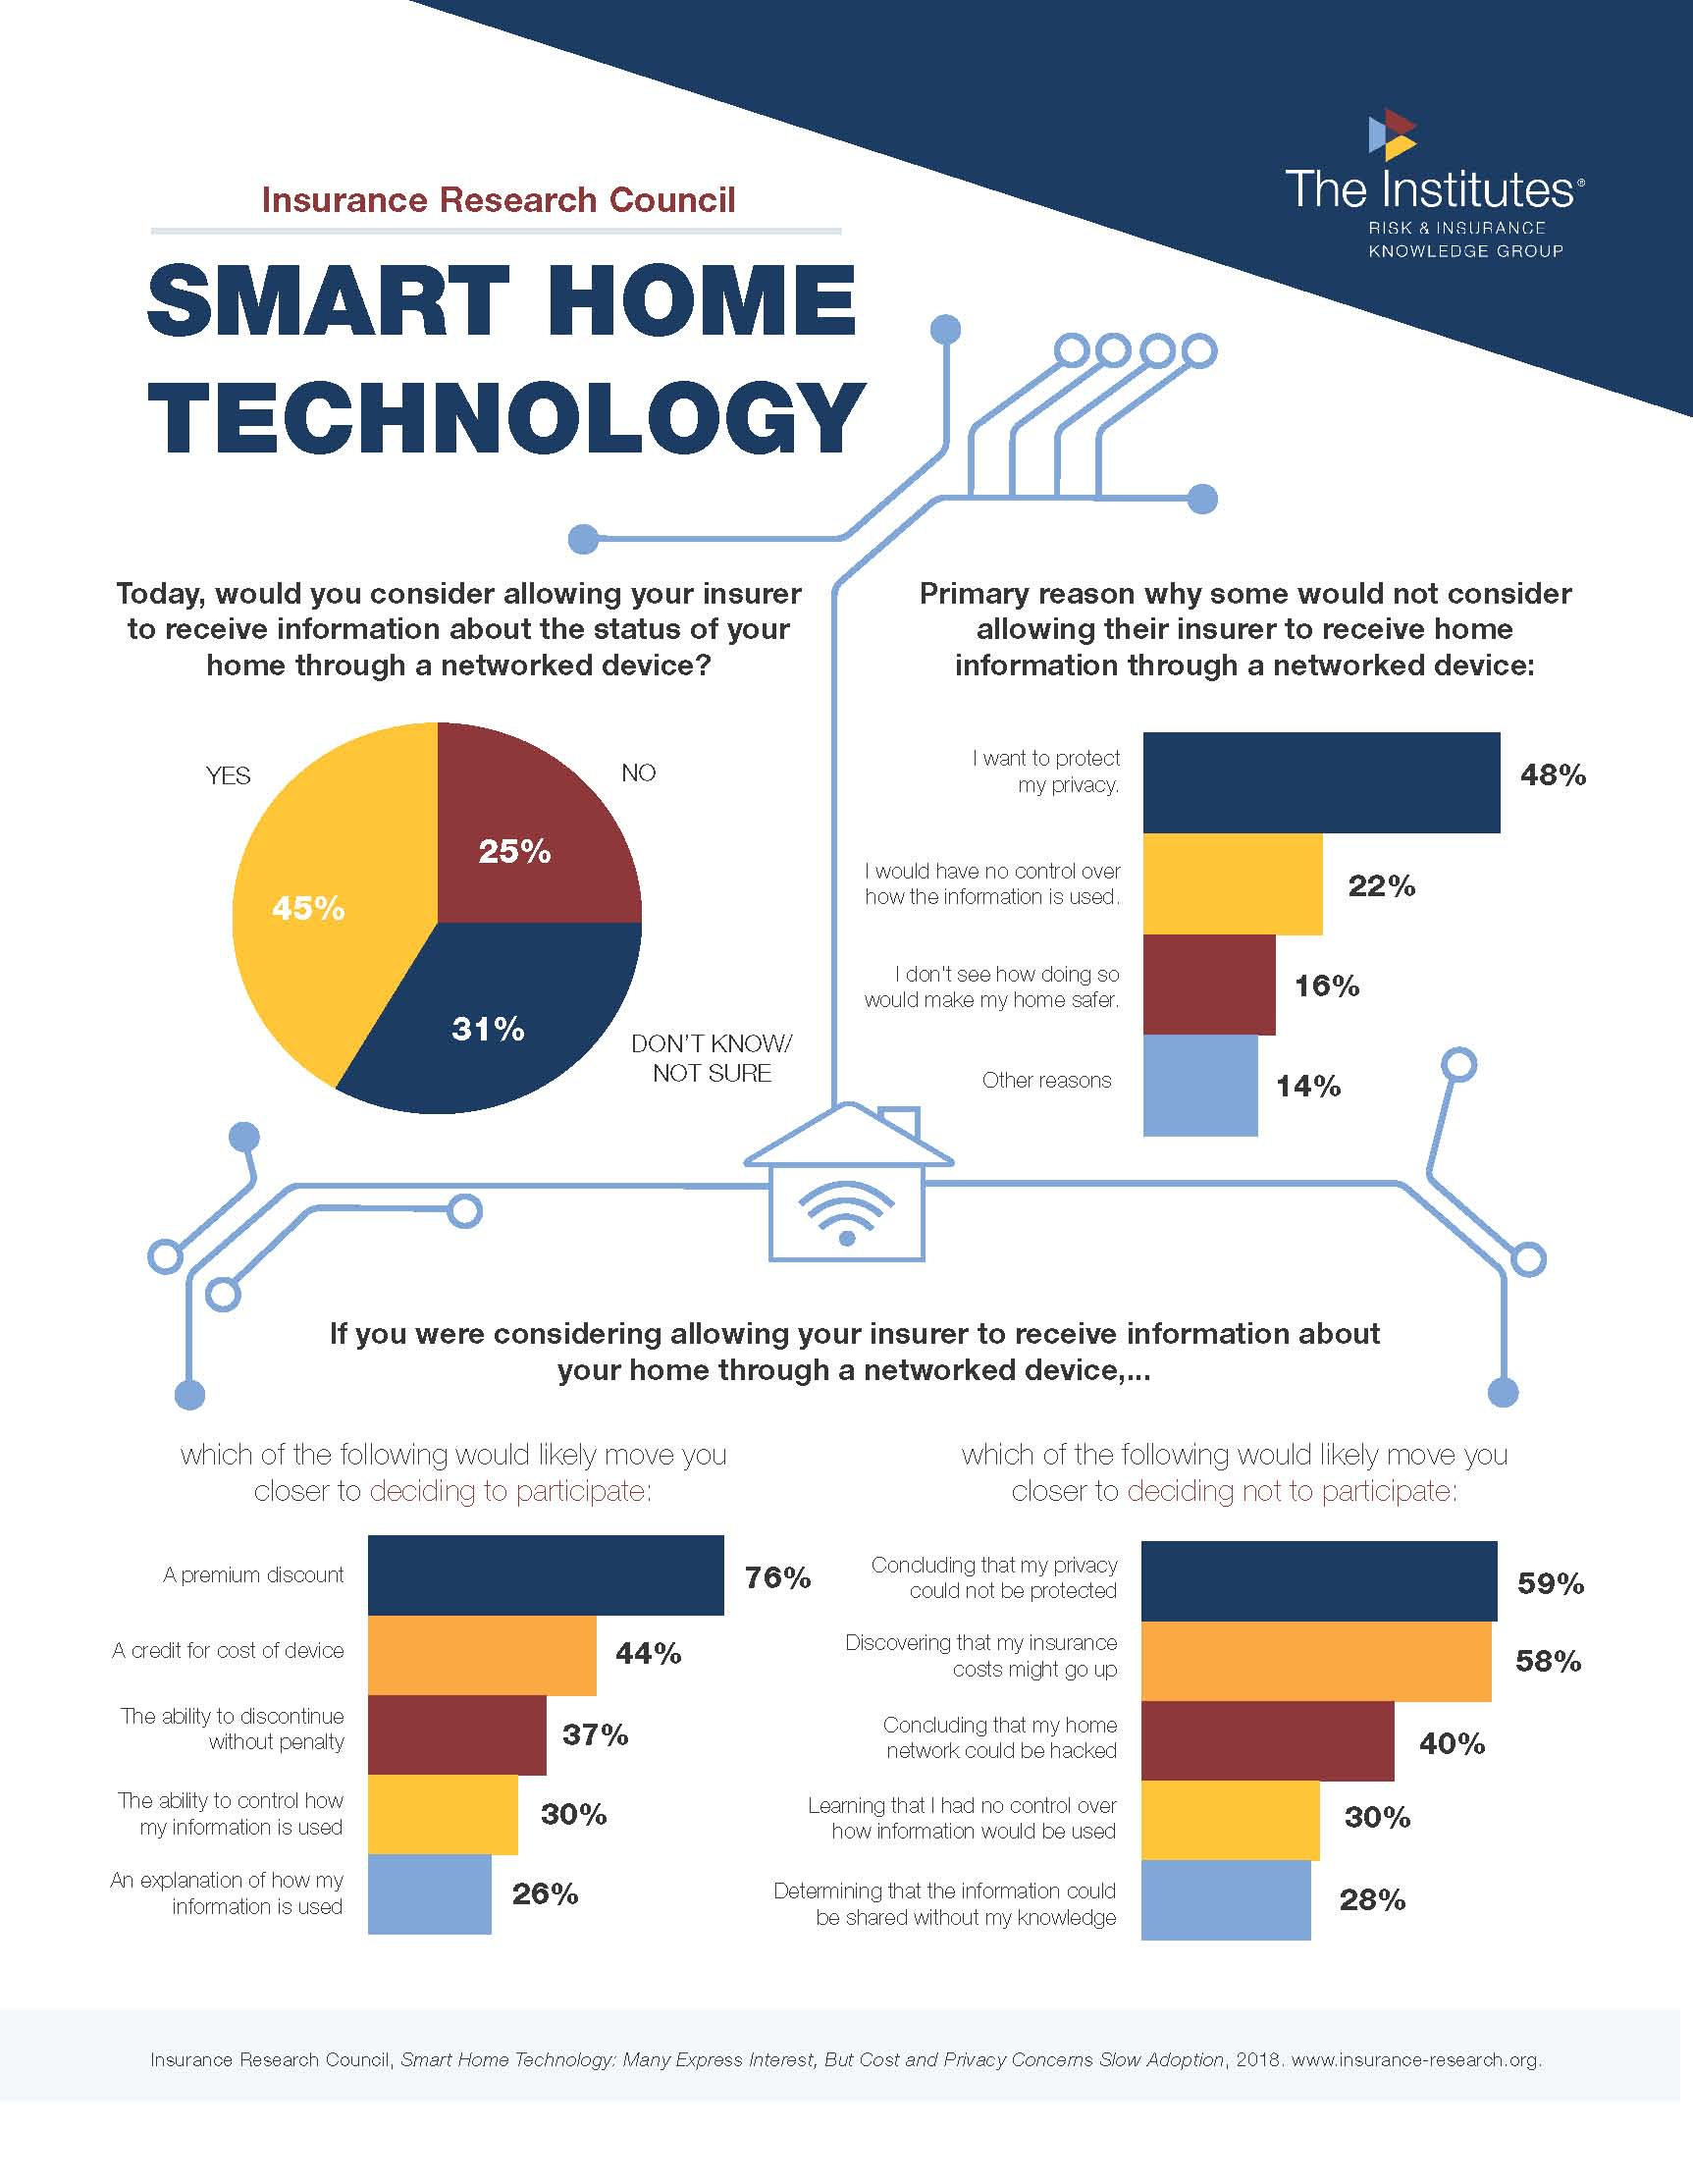 Smart Home Technology Many Express Interest But Cost And Privacy Concerns Slow Adoption